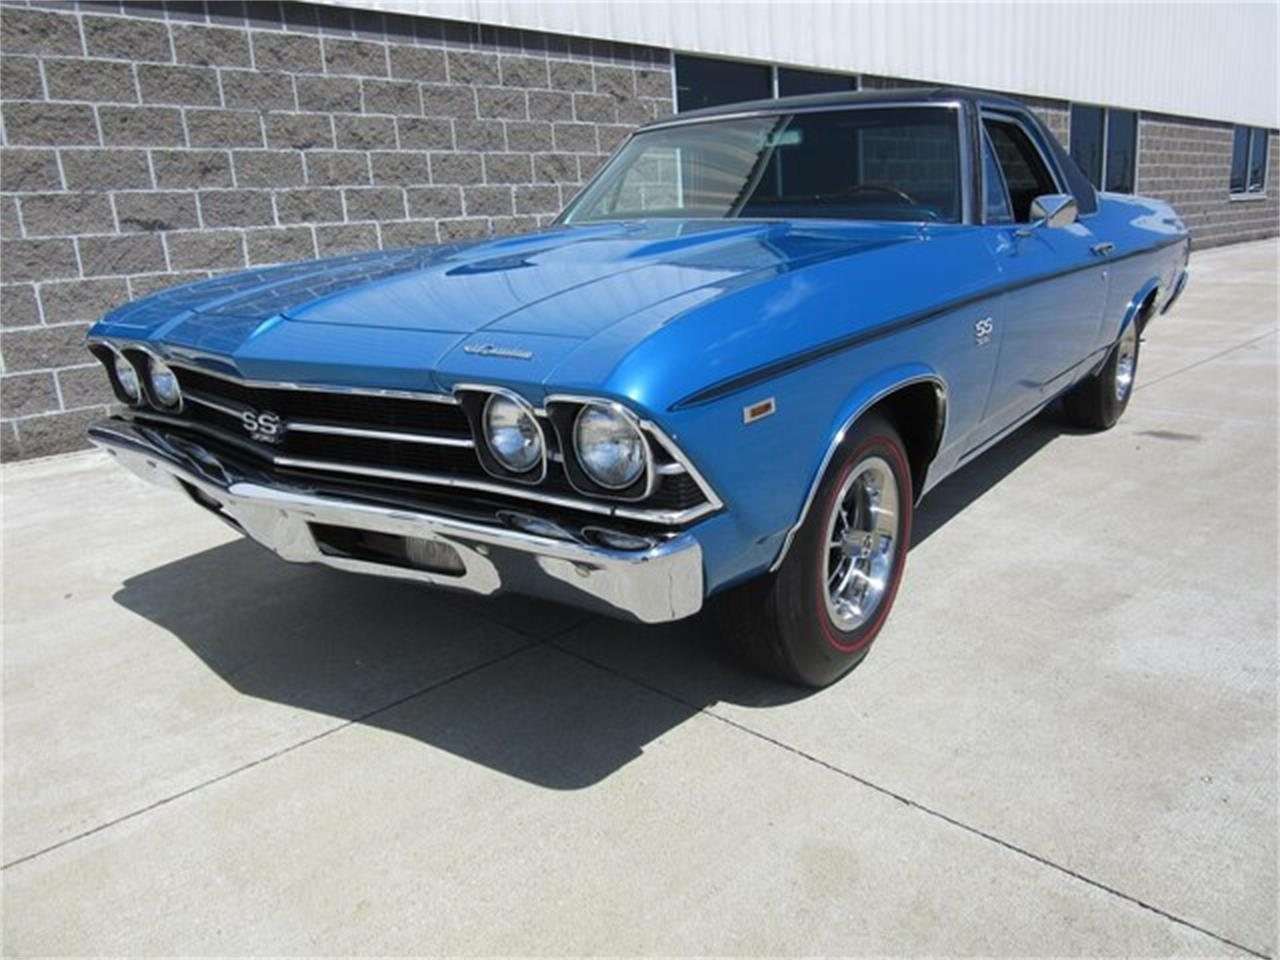 Large Picture of Classic 1969 El Camino - $38,500.00 - QTRB